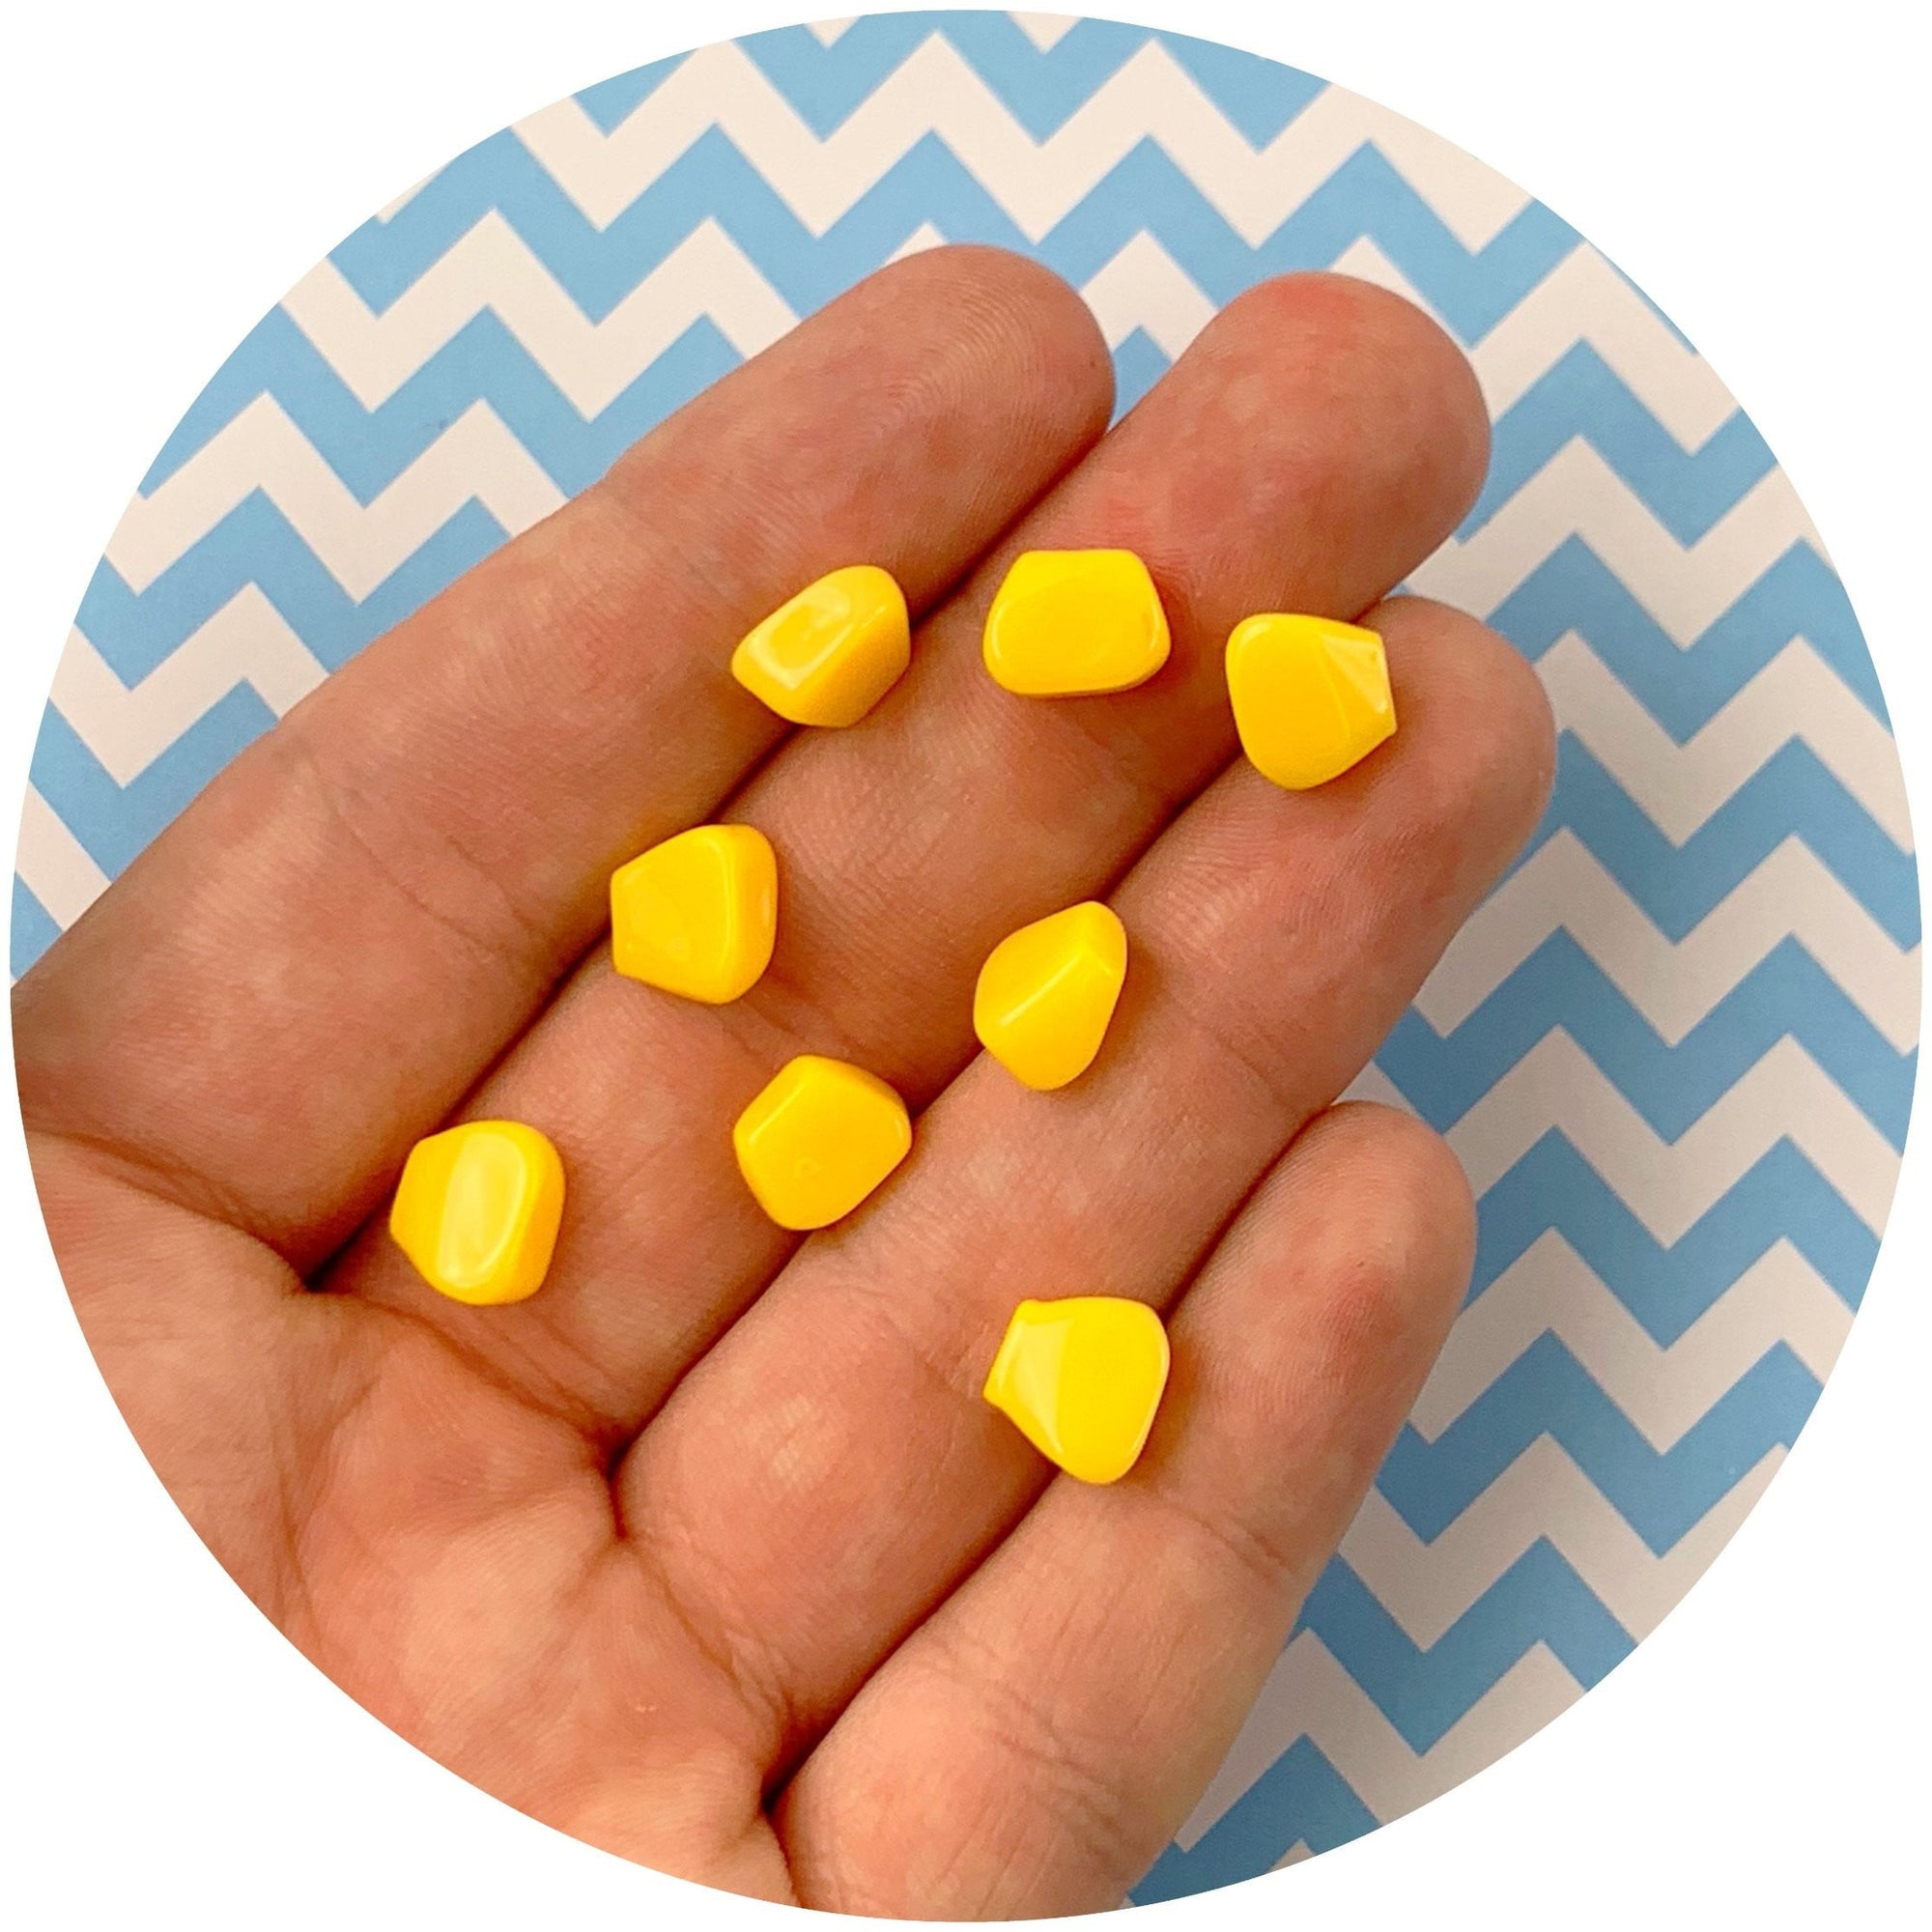 Corn Pieces - Fimo Slices - Dope Slimes LLC - Dope Slimes LLC